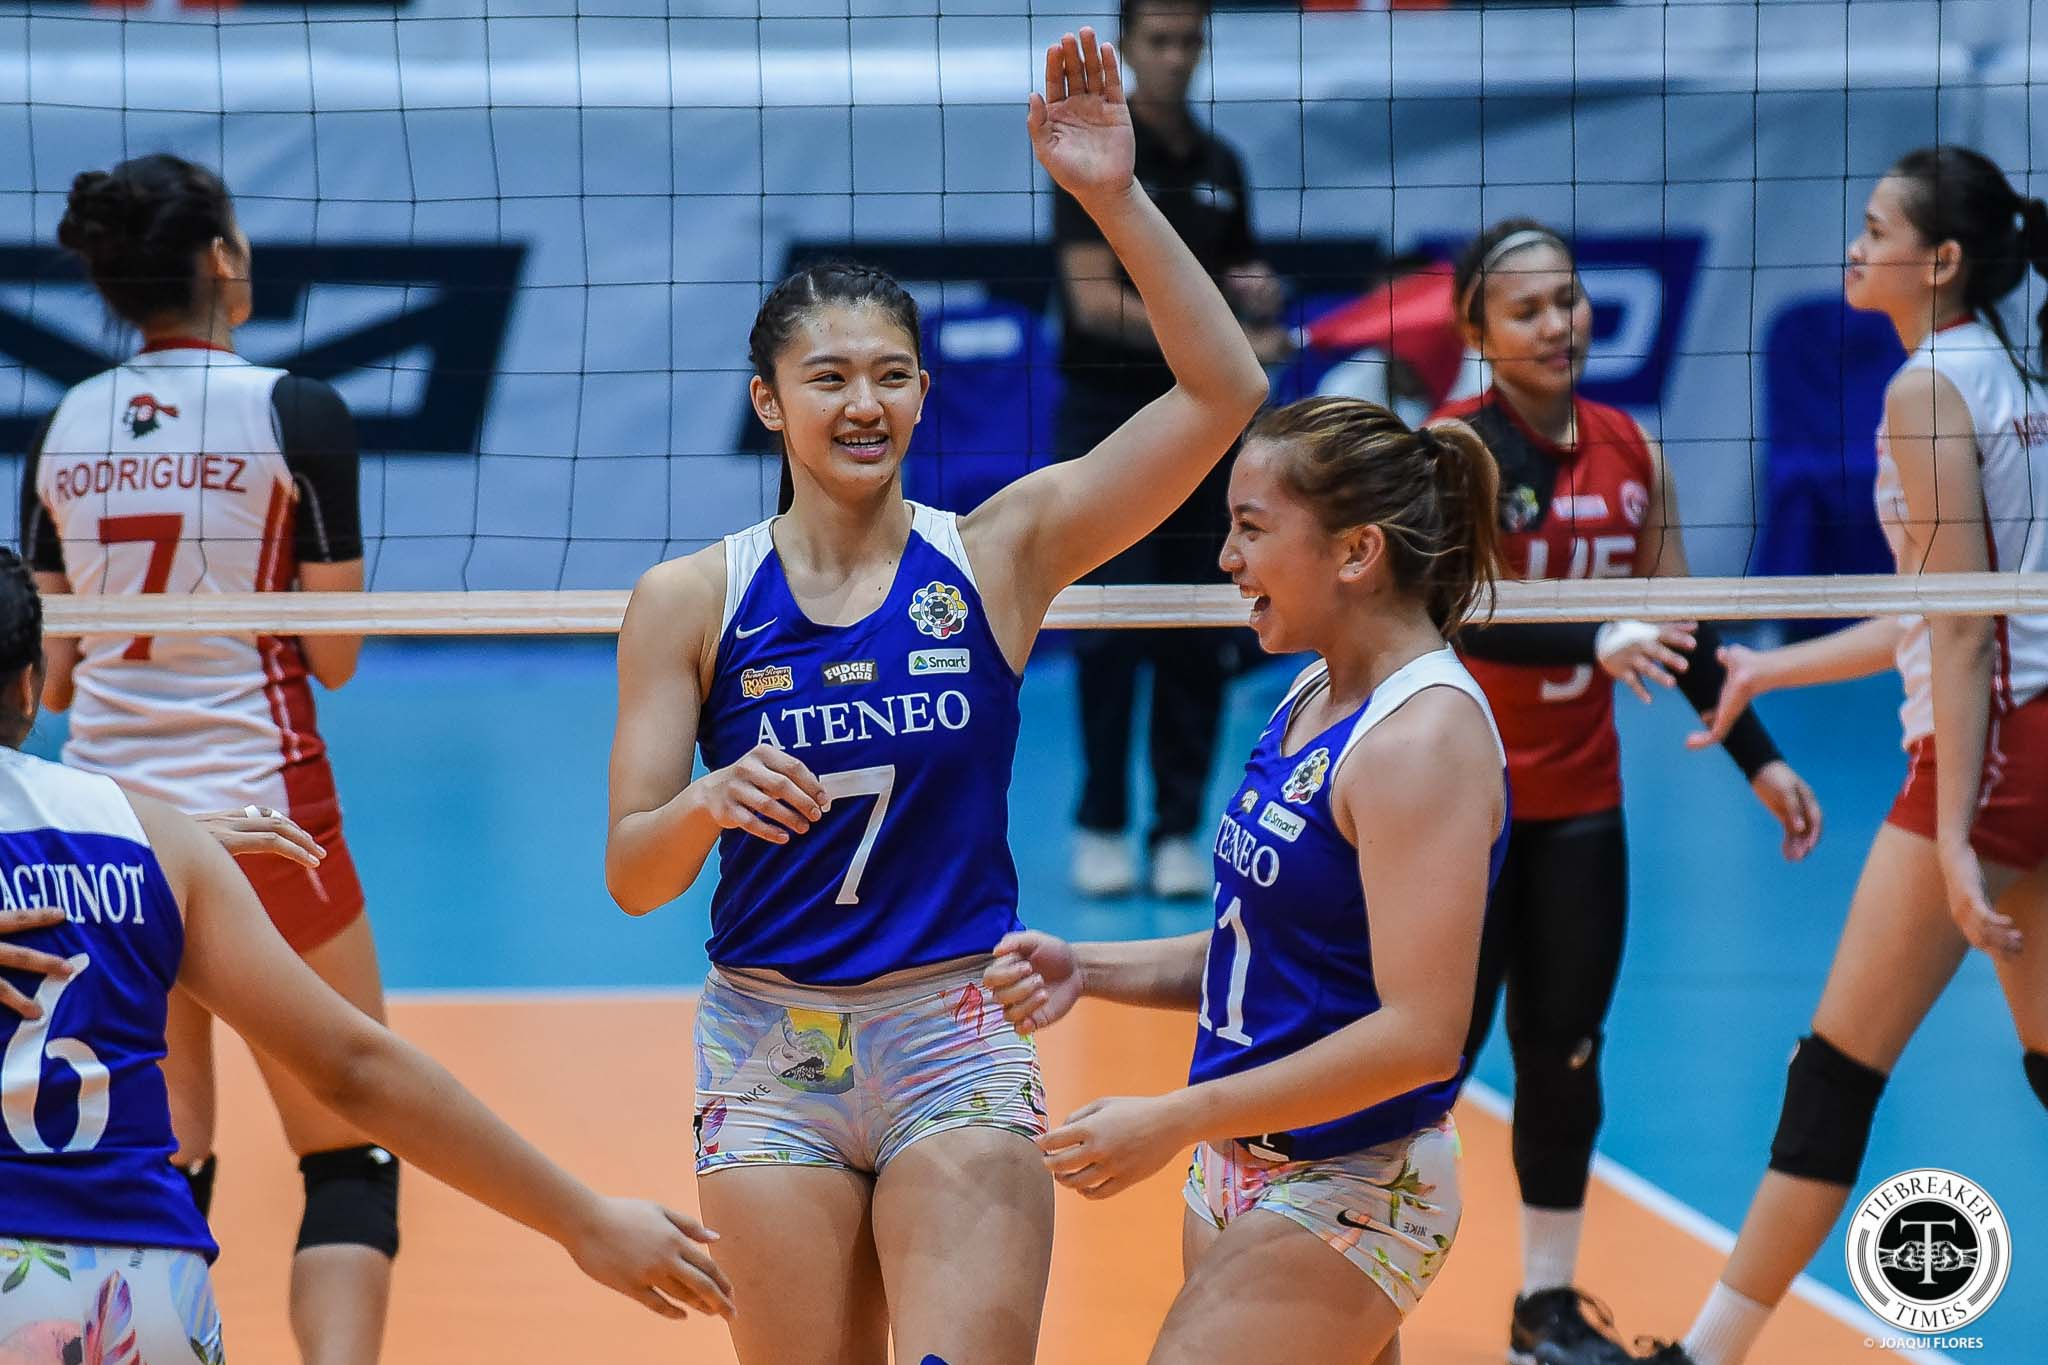 Tiebreaker Times Ateneo Lady Eagles clinch top seed, send UE, Kath Arado packing ADMU News UAAP UE Volleyball  UE Women's Volleyball UAAP Season 81 Women's Volleyball UAAP Season 81 Rey Karl Dimaculangan Oliver Almadro Mary Anne Mendrez Maddie Madayag Kim Gequillana Kath Arado Kat Tolentino Judith Abil Deanna Wong Ateneo Women's Volleyball